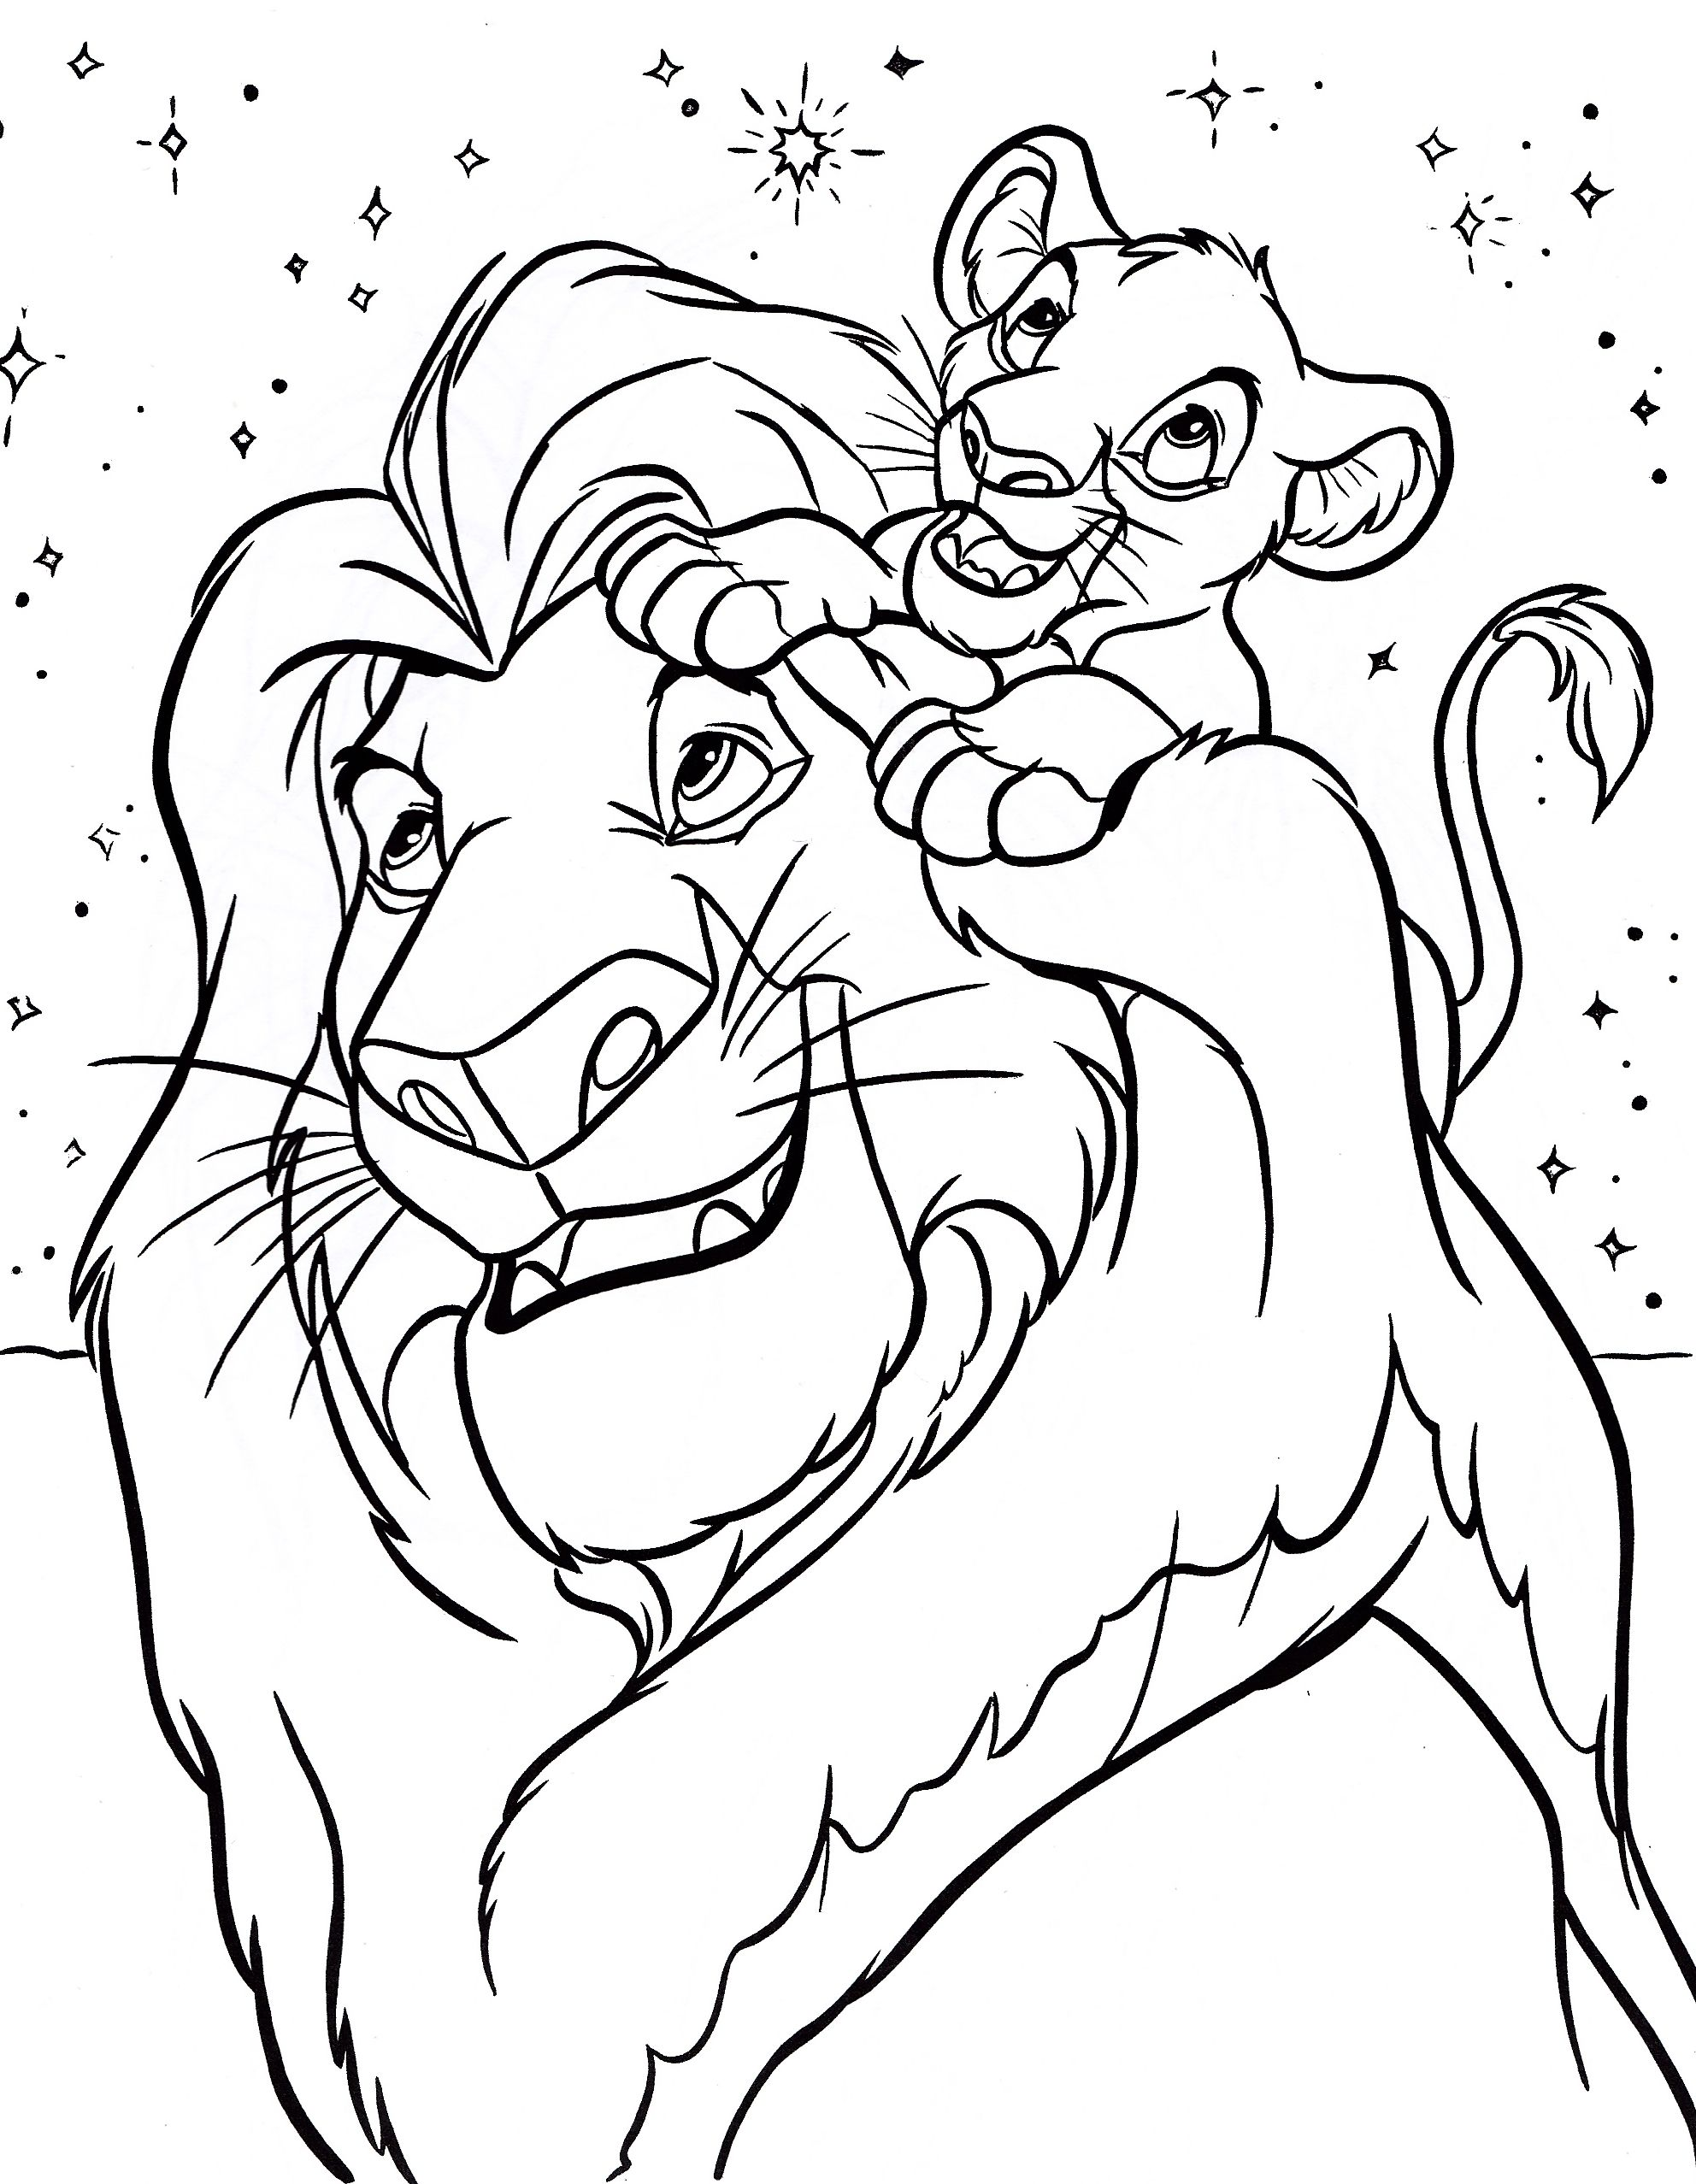 Printable Coloring Pages Disney Free Books New Lion Coloring Pages Disney Coloring Sheets Ariel Coloring Pages